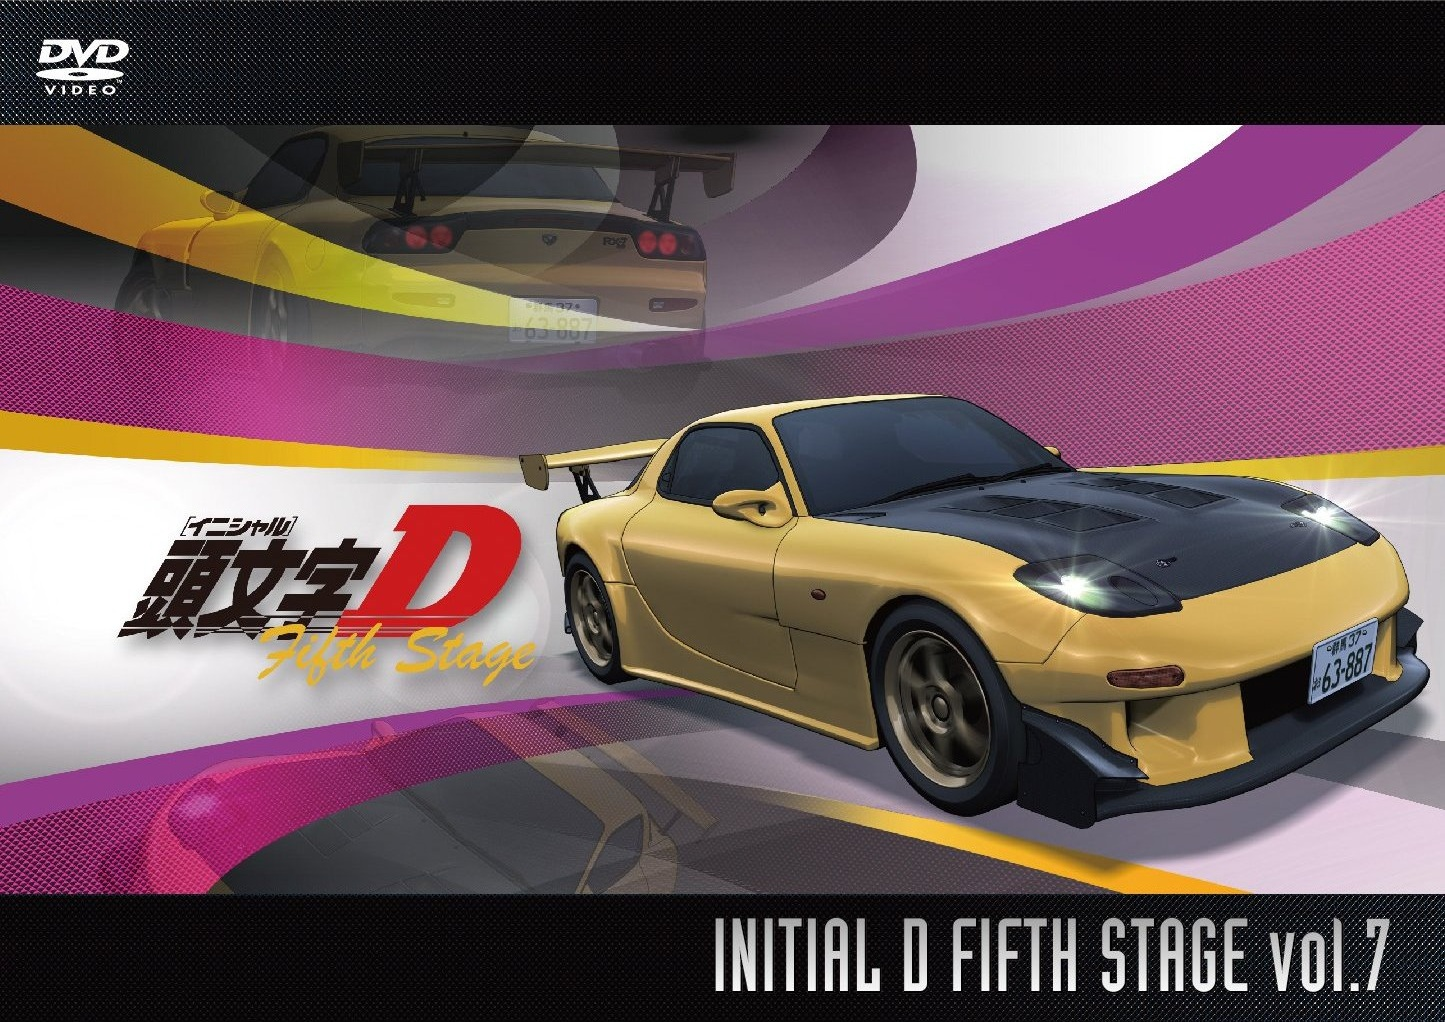 nouveaux film et s rie anim s pour initial d. Black Bedroom Furniture Sets. Home Design Ideas